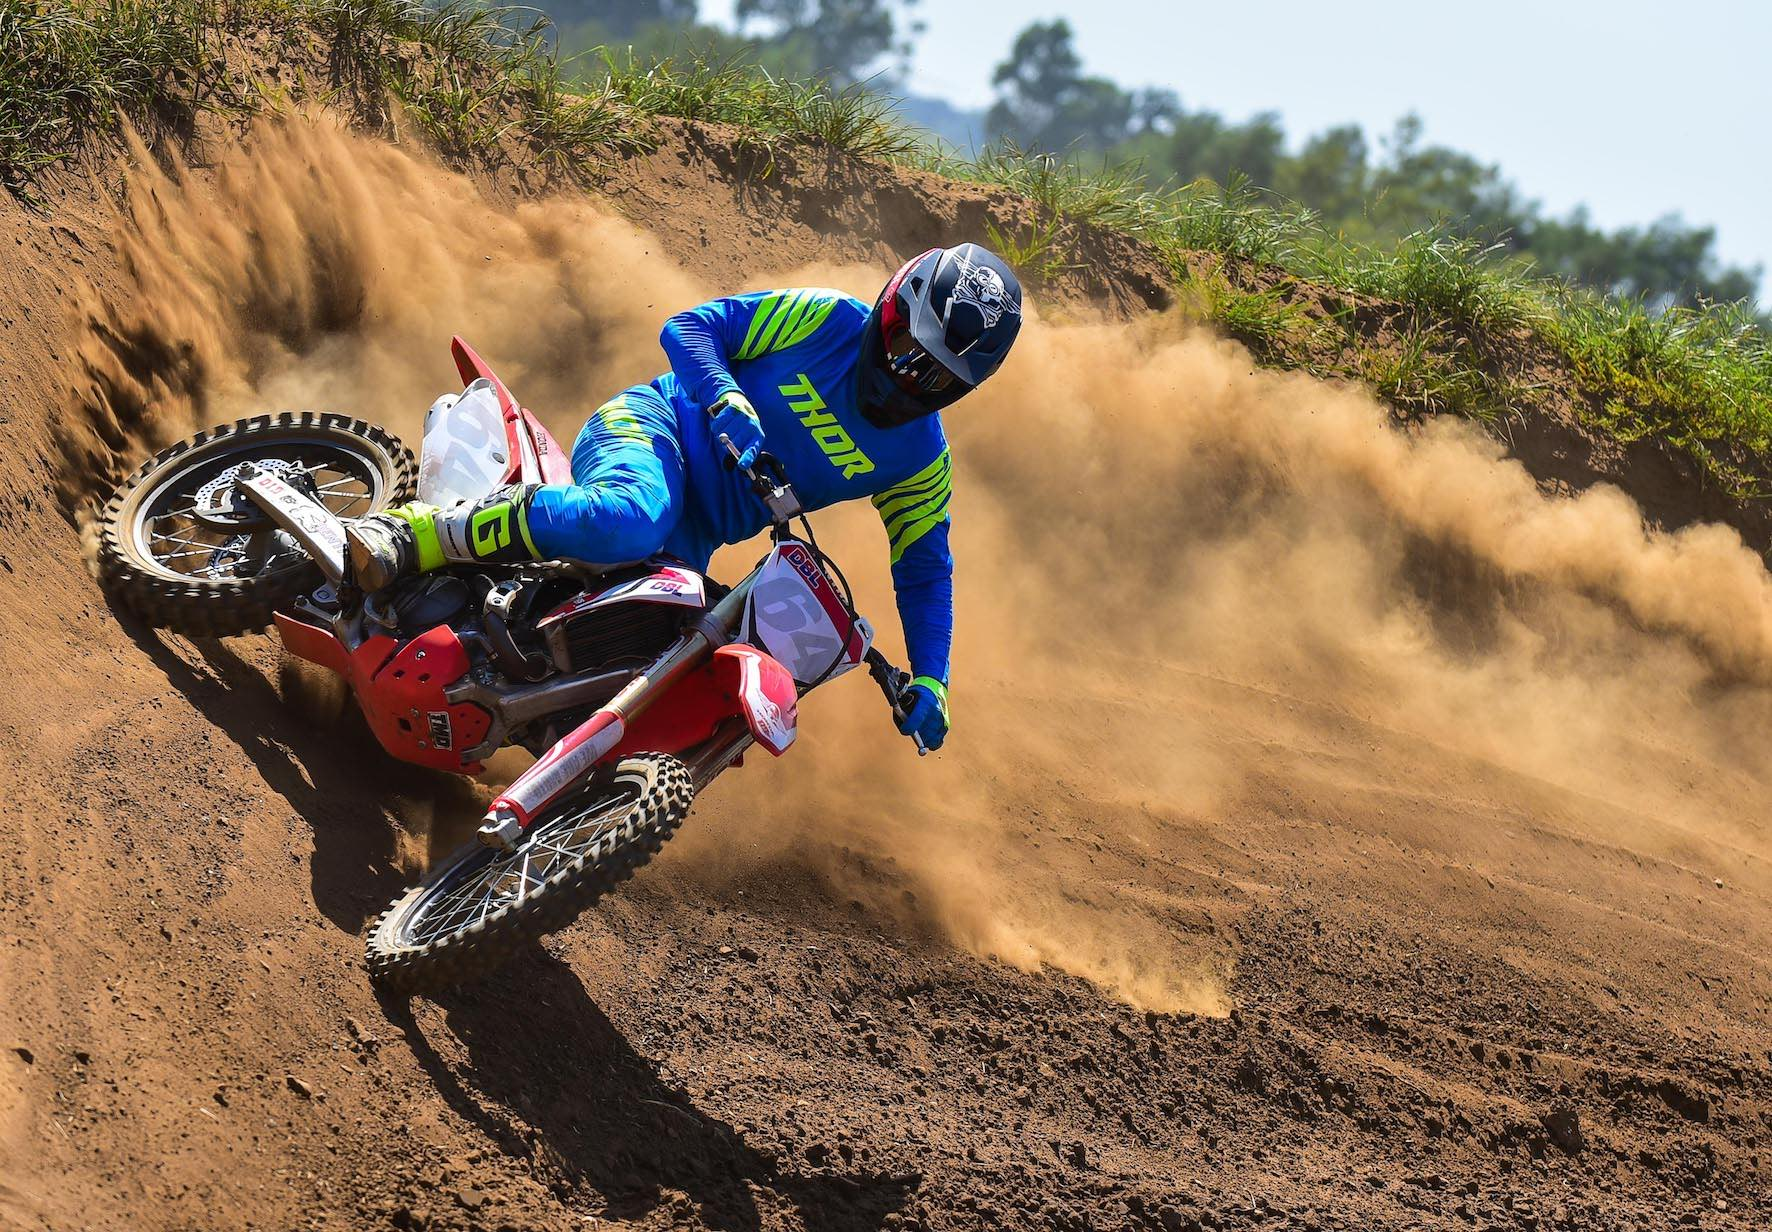 We test the We review the 2020 Thor MX Prime Pro Racewear